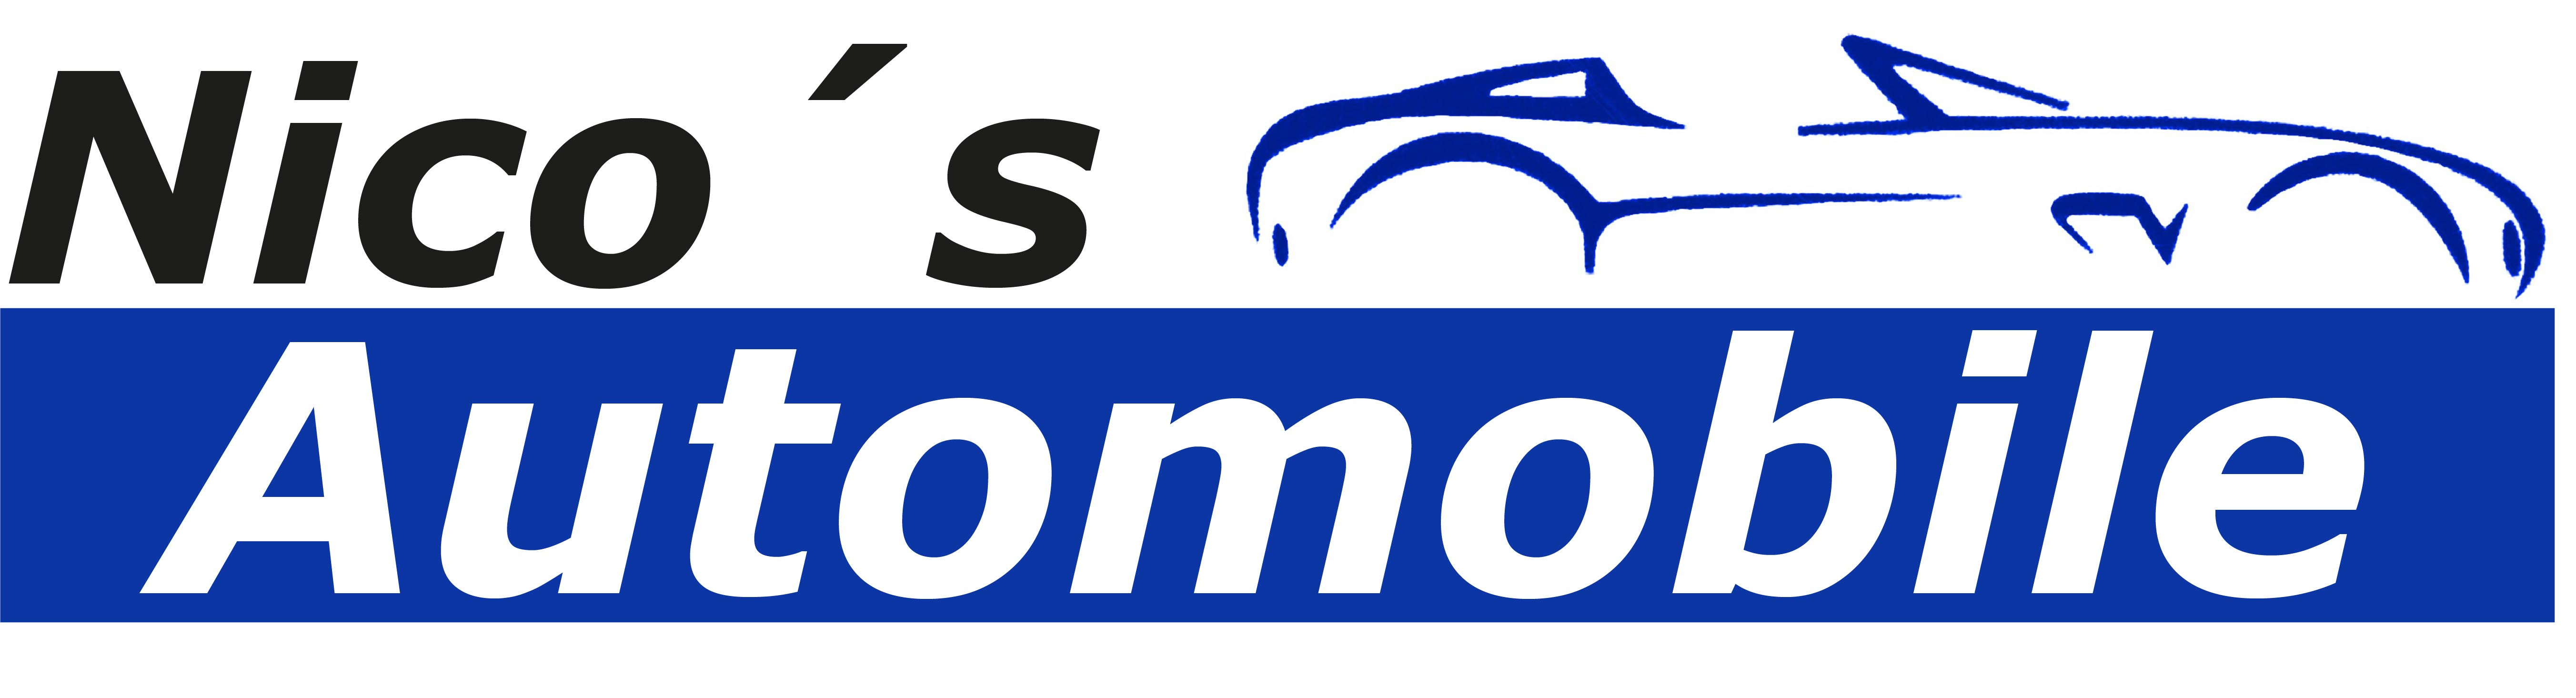 Nico's Automobile logo